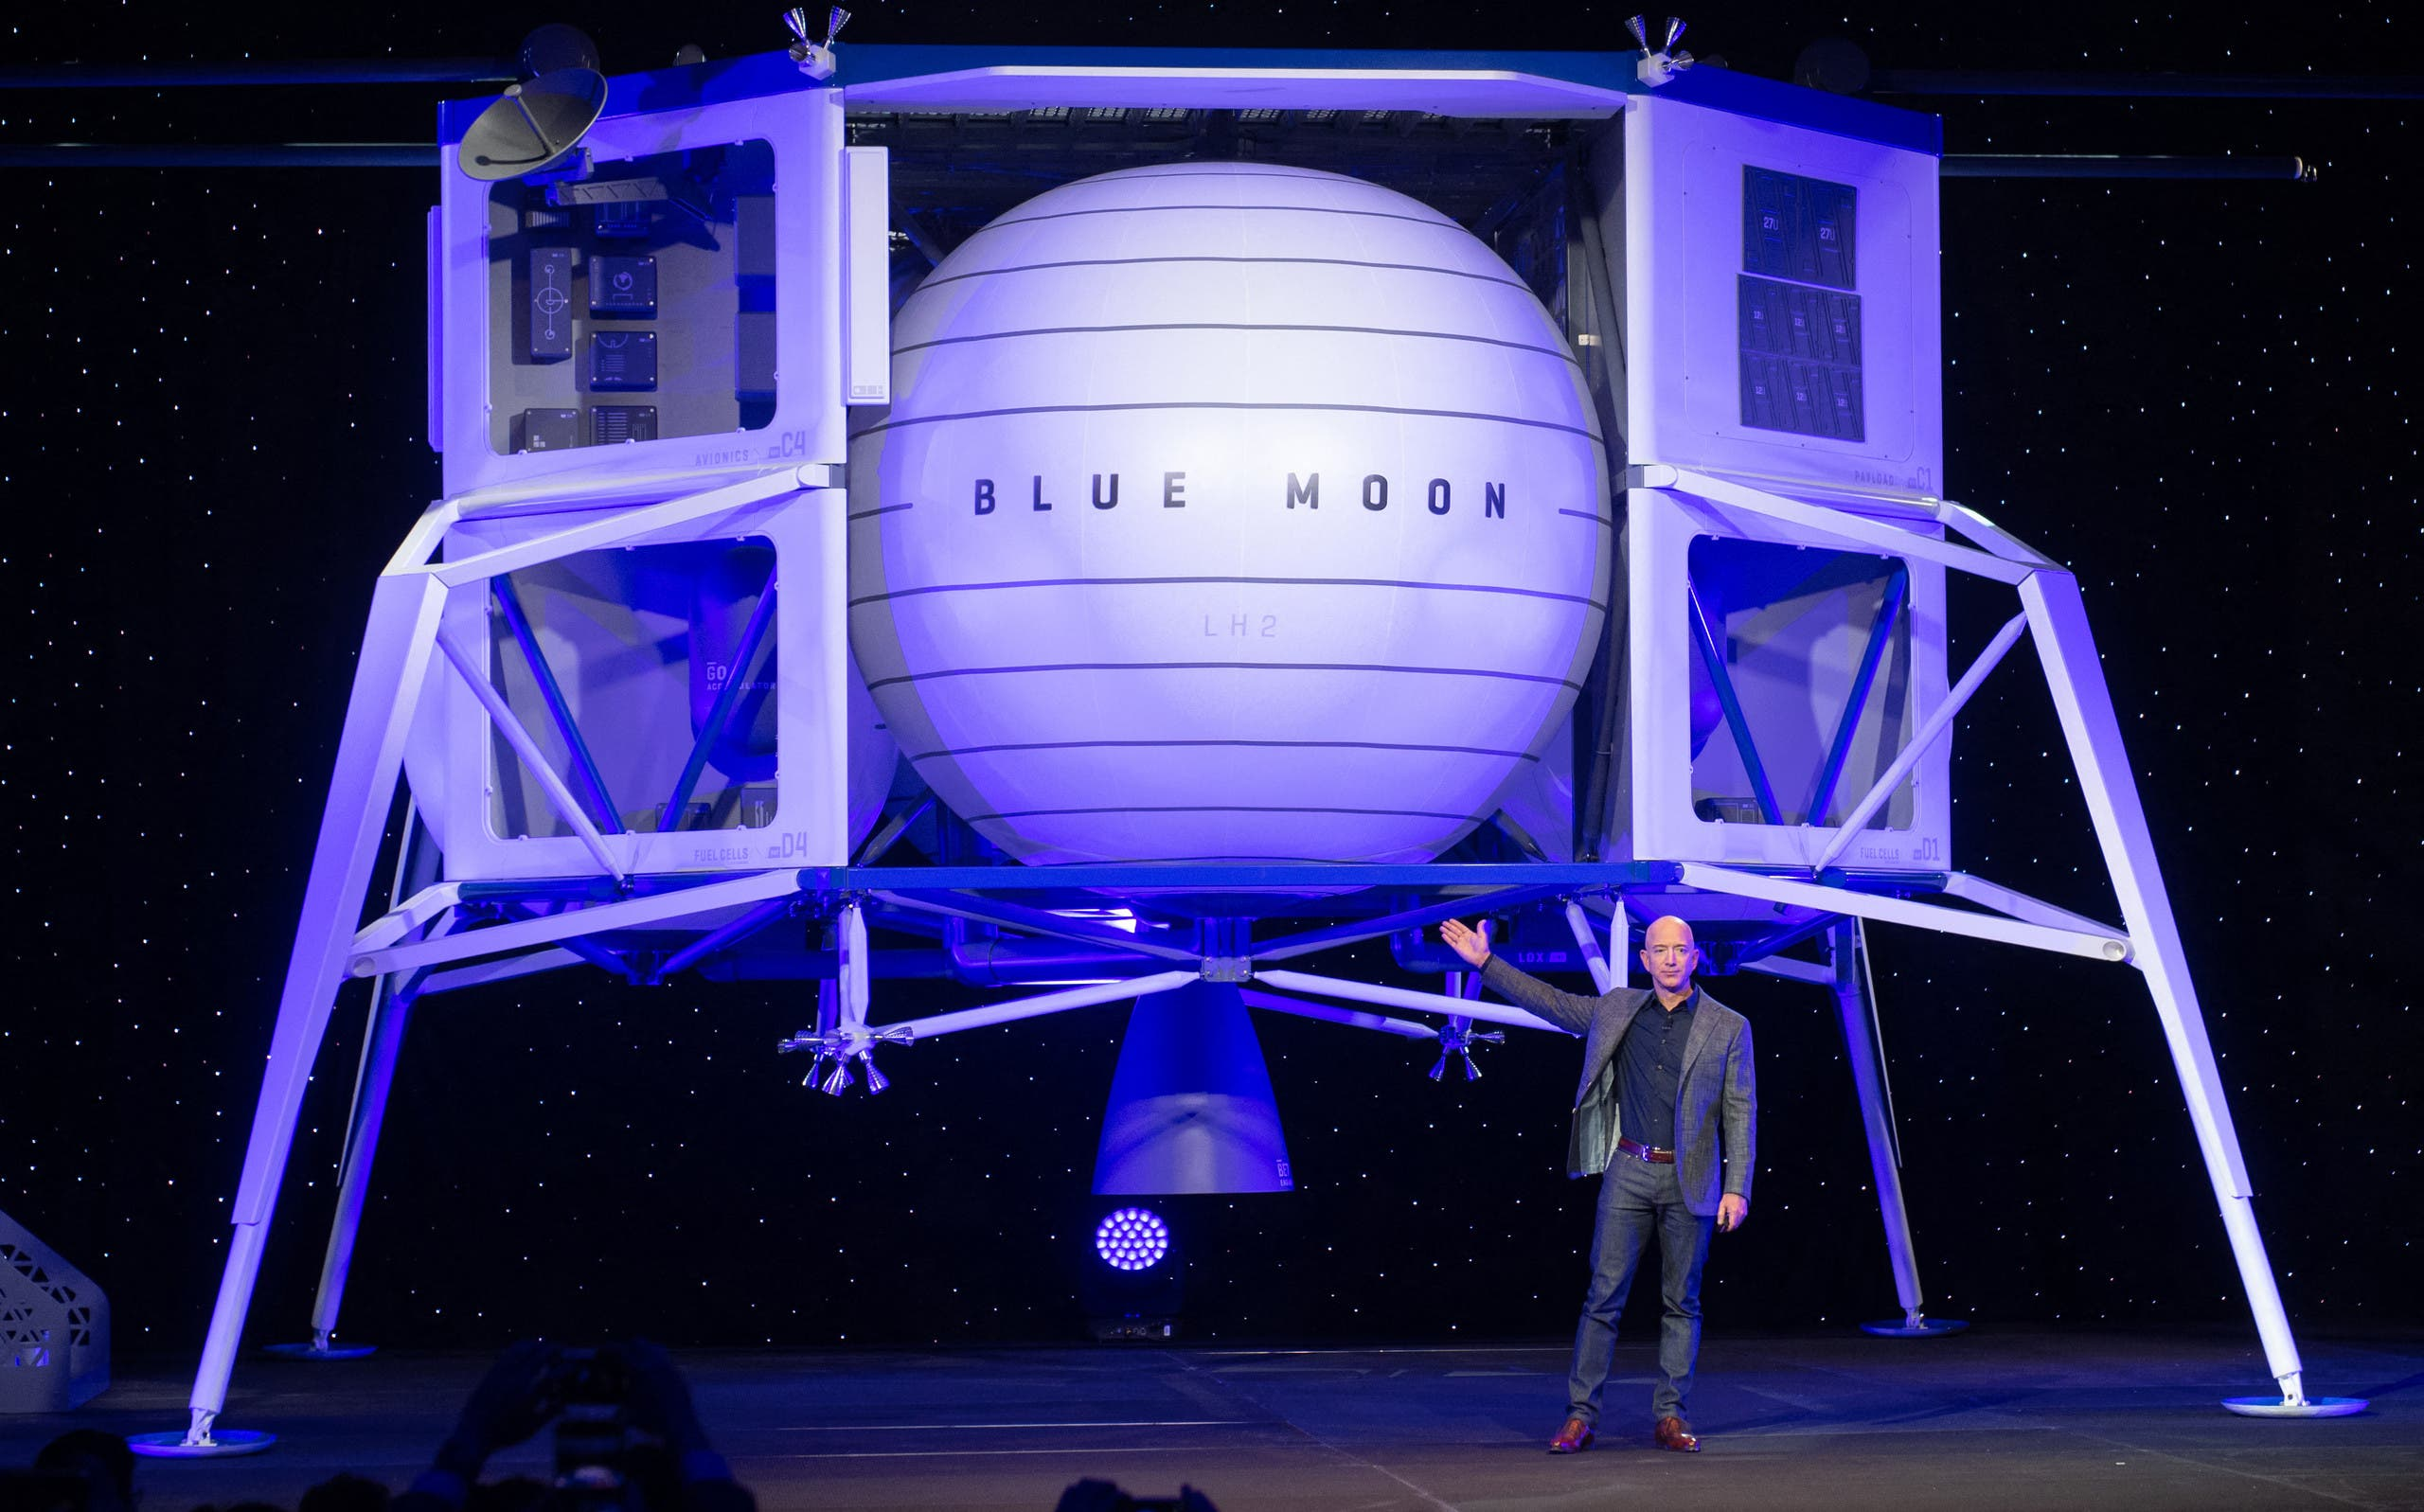 In this file photo taken on May 09, 2019, Amazon CEO Jeff Bezos announces Blue Moon, a lunar landing vehicle for the Moon, during a Blue Origin event in Washington, DC. (AP)